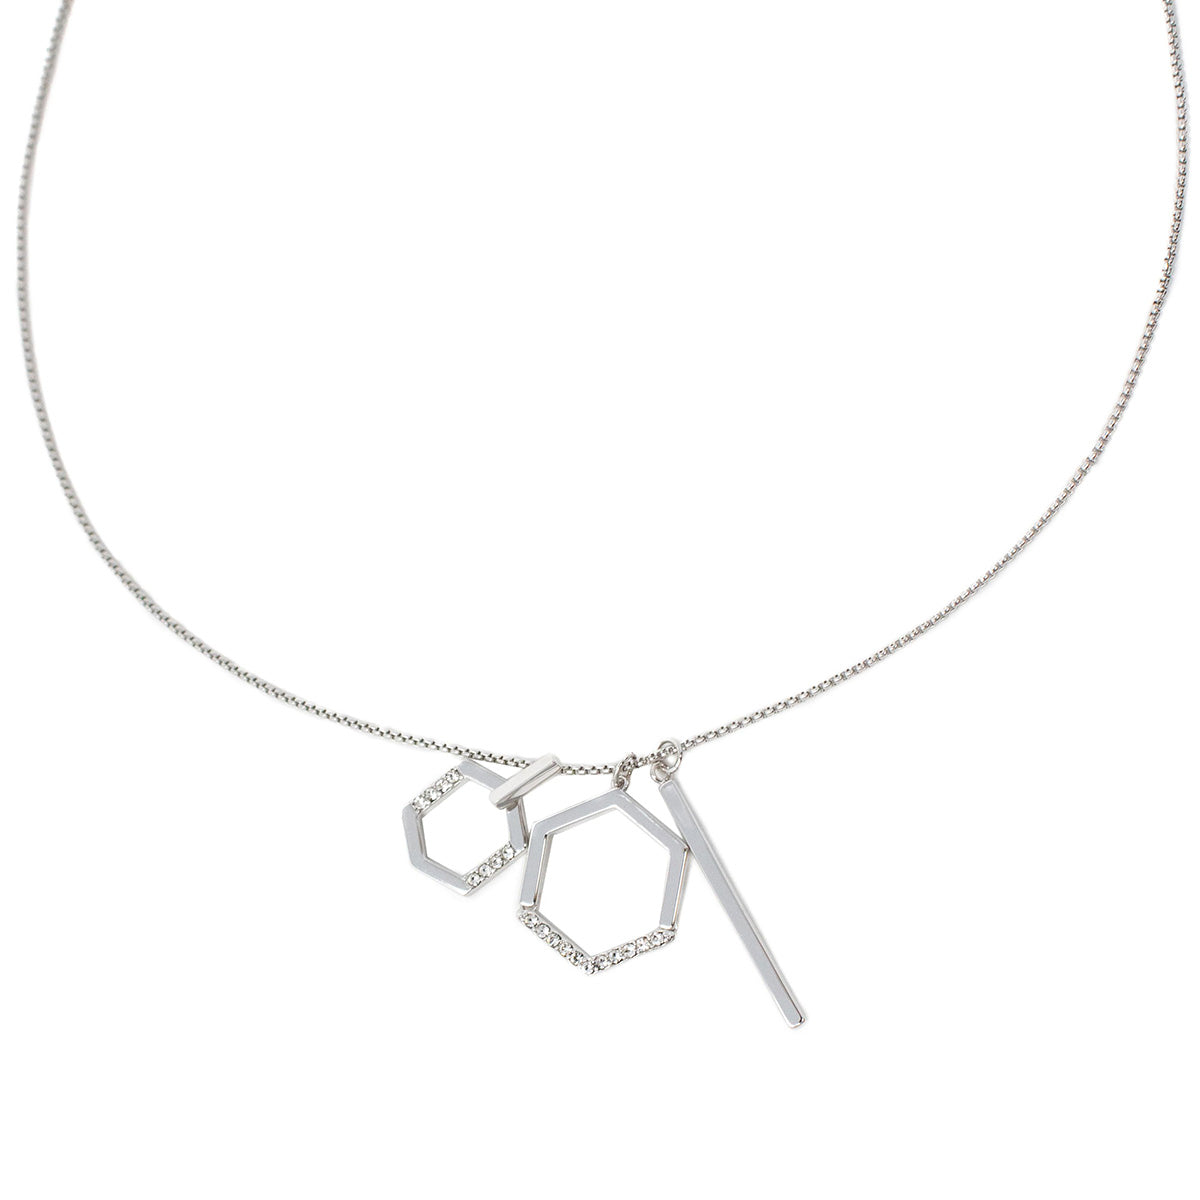 Constellation Long Charm Slider Necklace - Rhodium